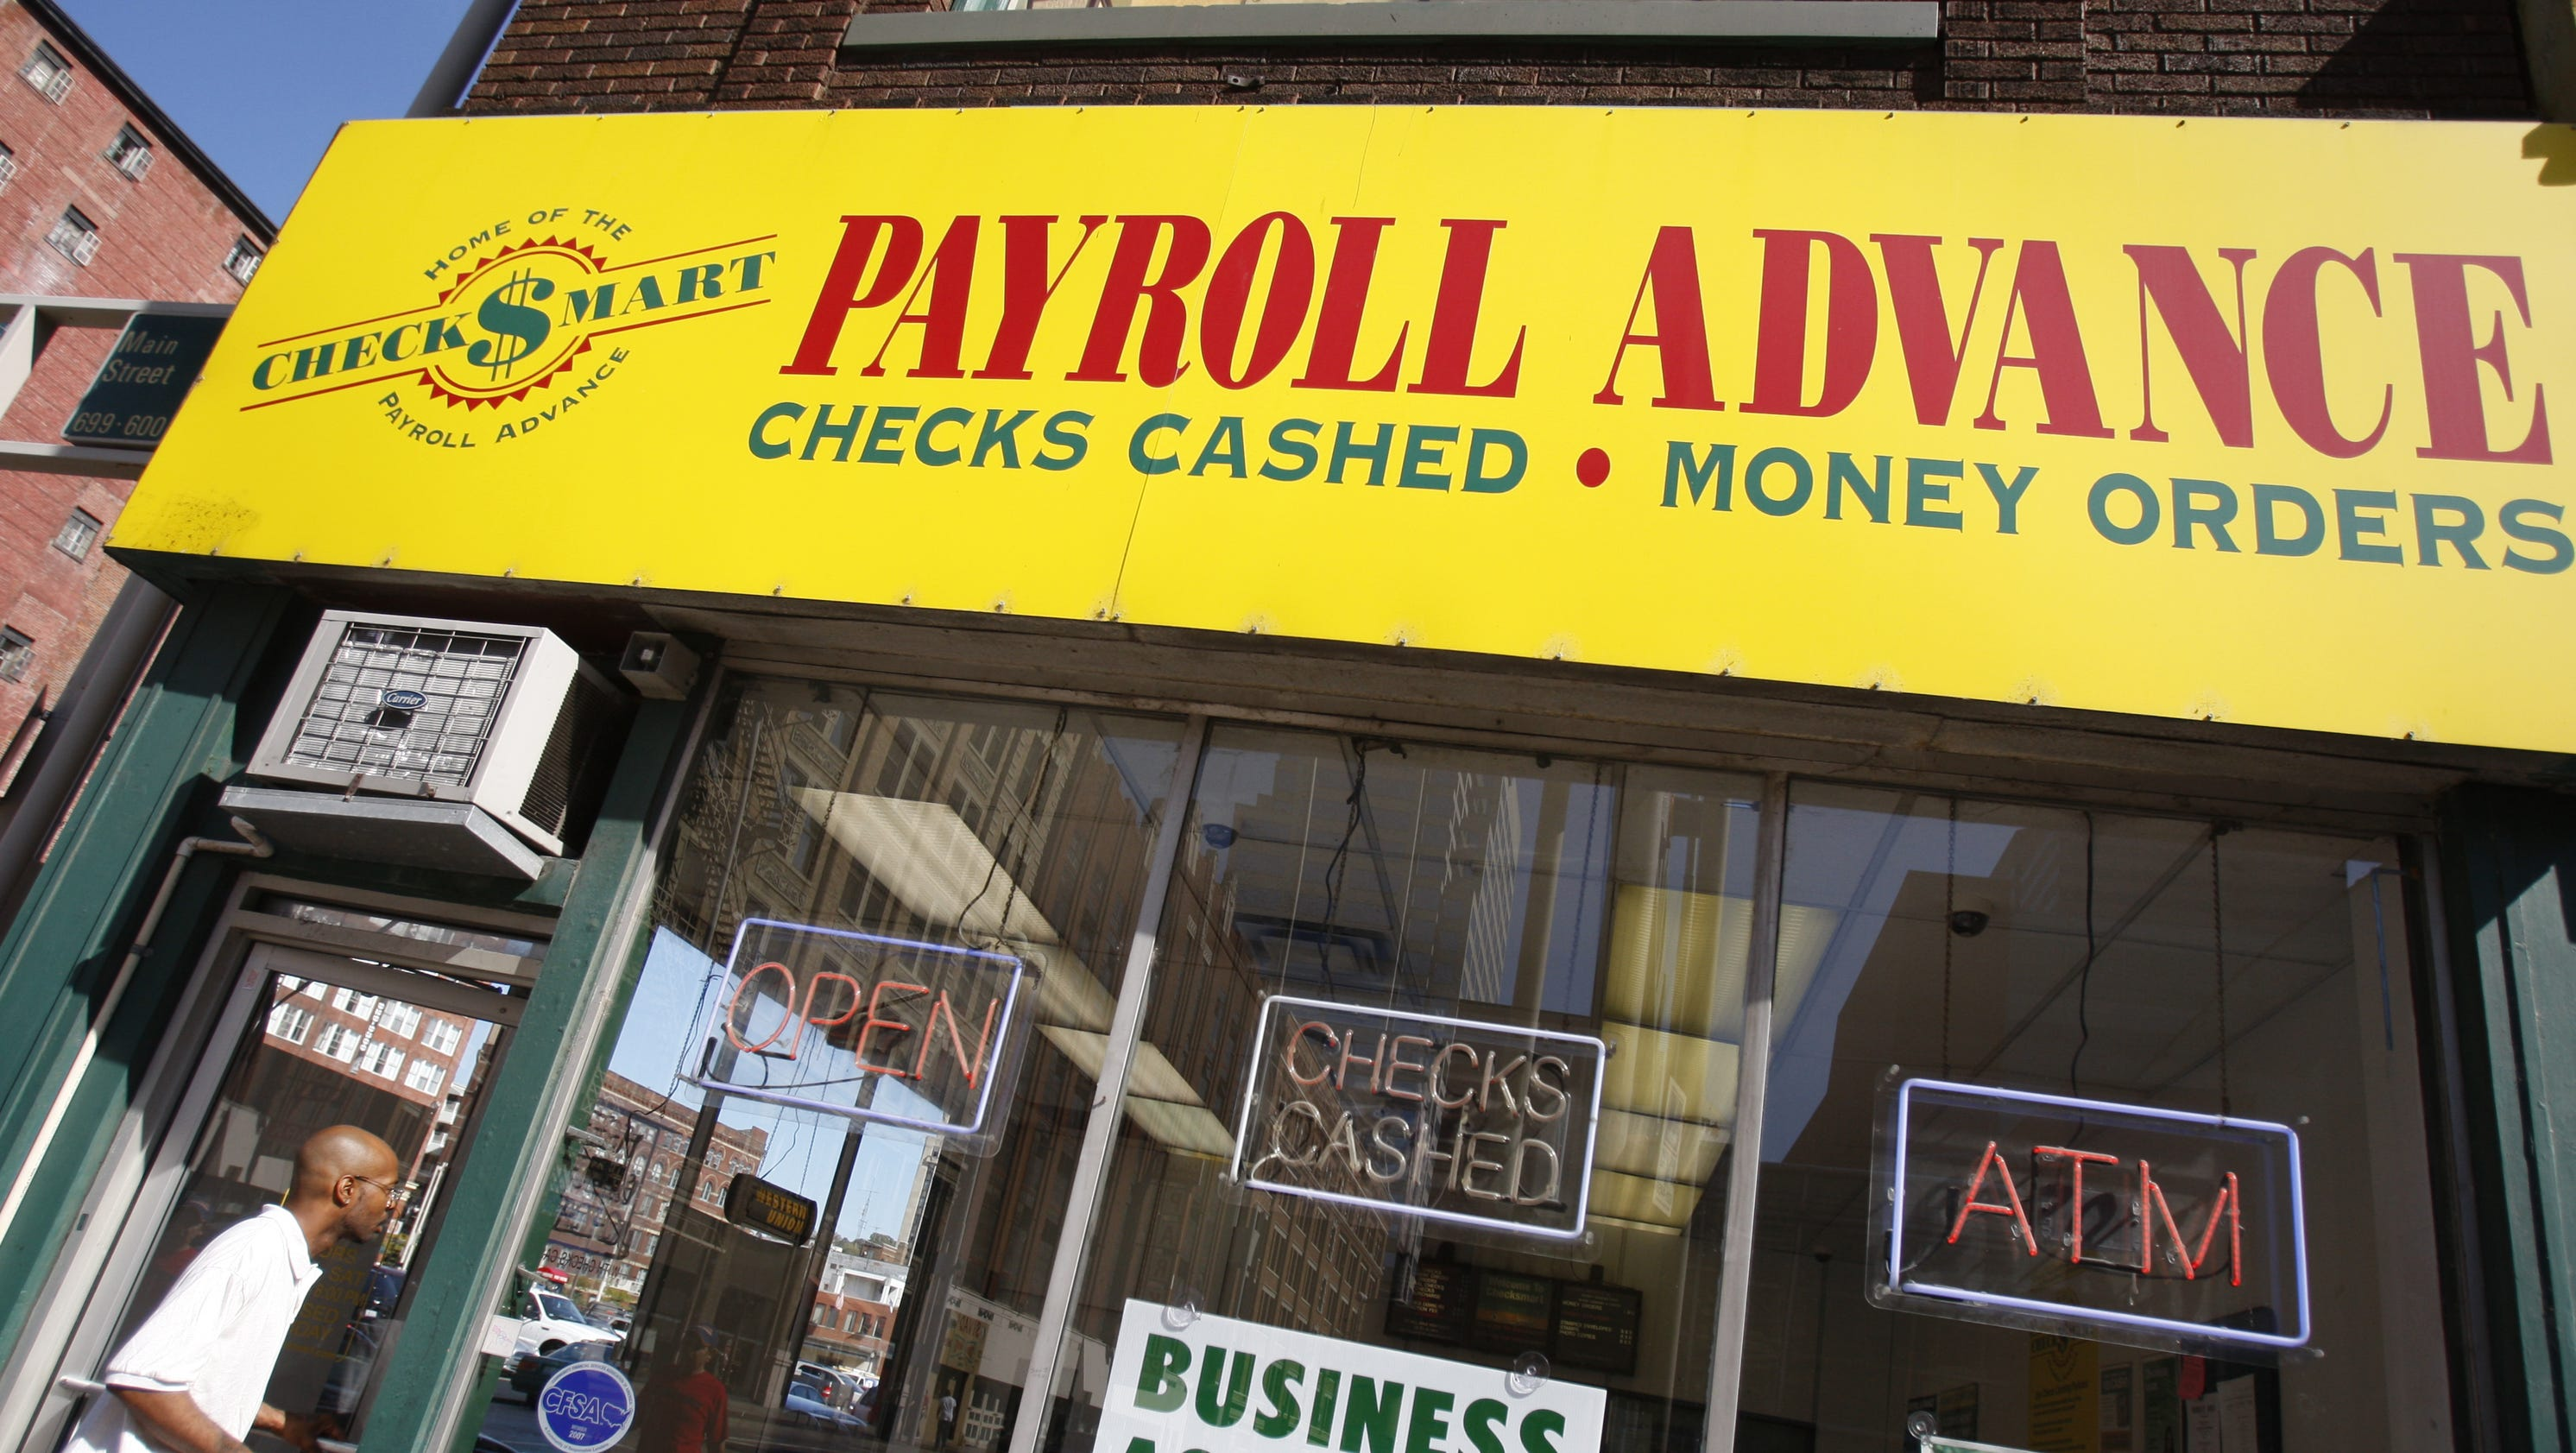 Fast cash advance with no bank account image 9